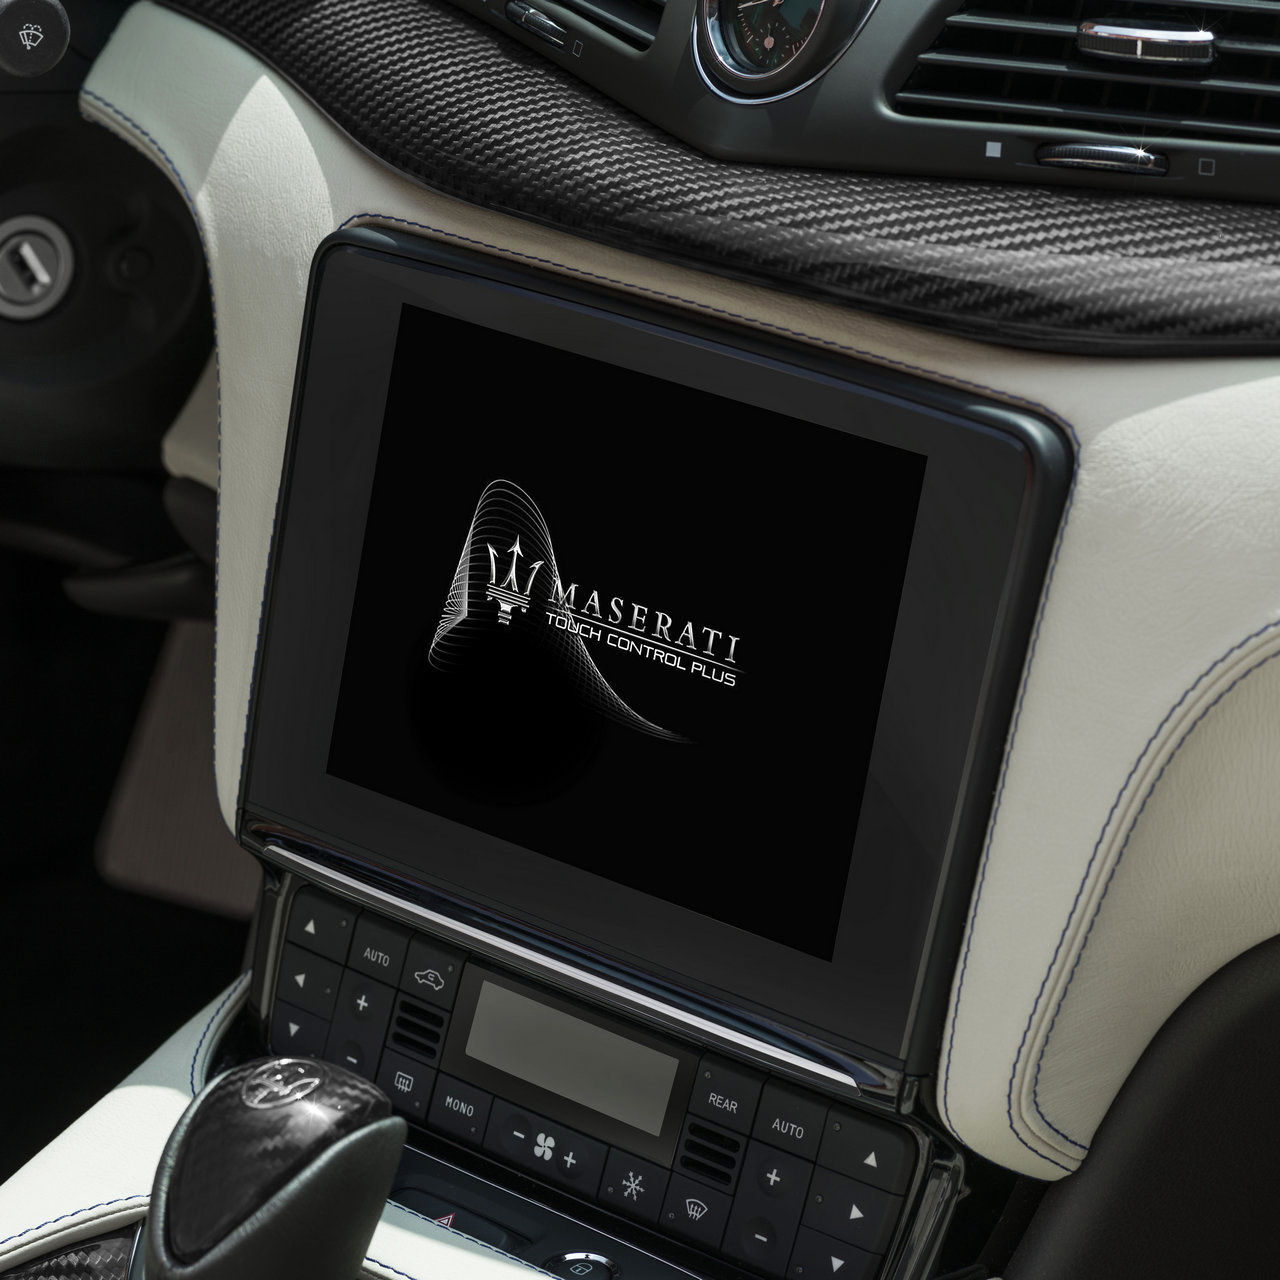 Maserati GranCabrio Innenausstattung - Display - Infotainment und App-Connectivity